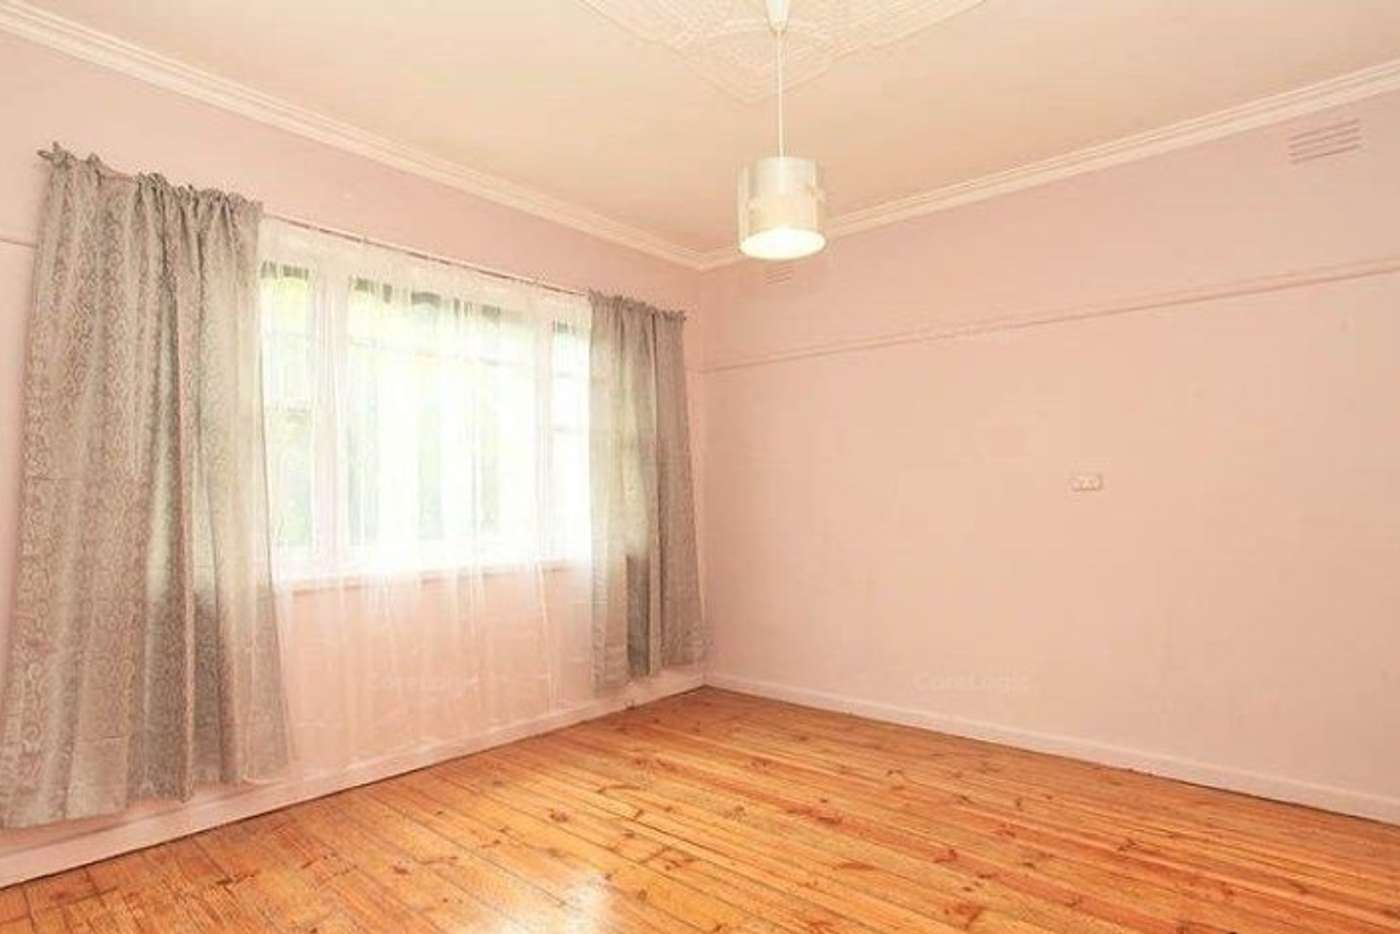 Sixth view of Homely house listing, 8 Baynton Avenue, Sunshine North VIC 3020